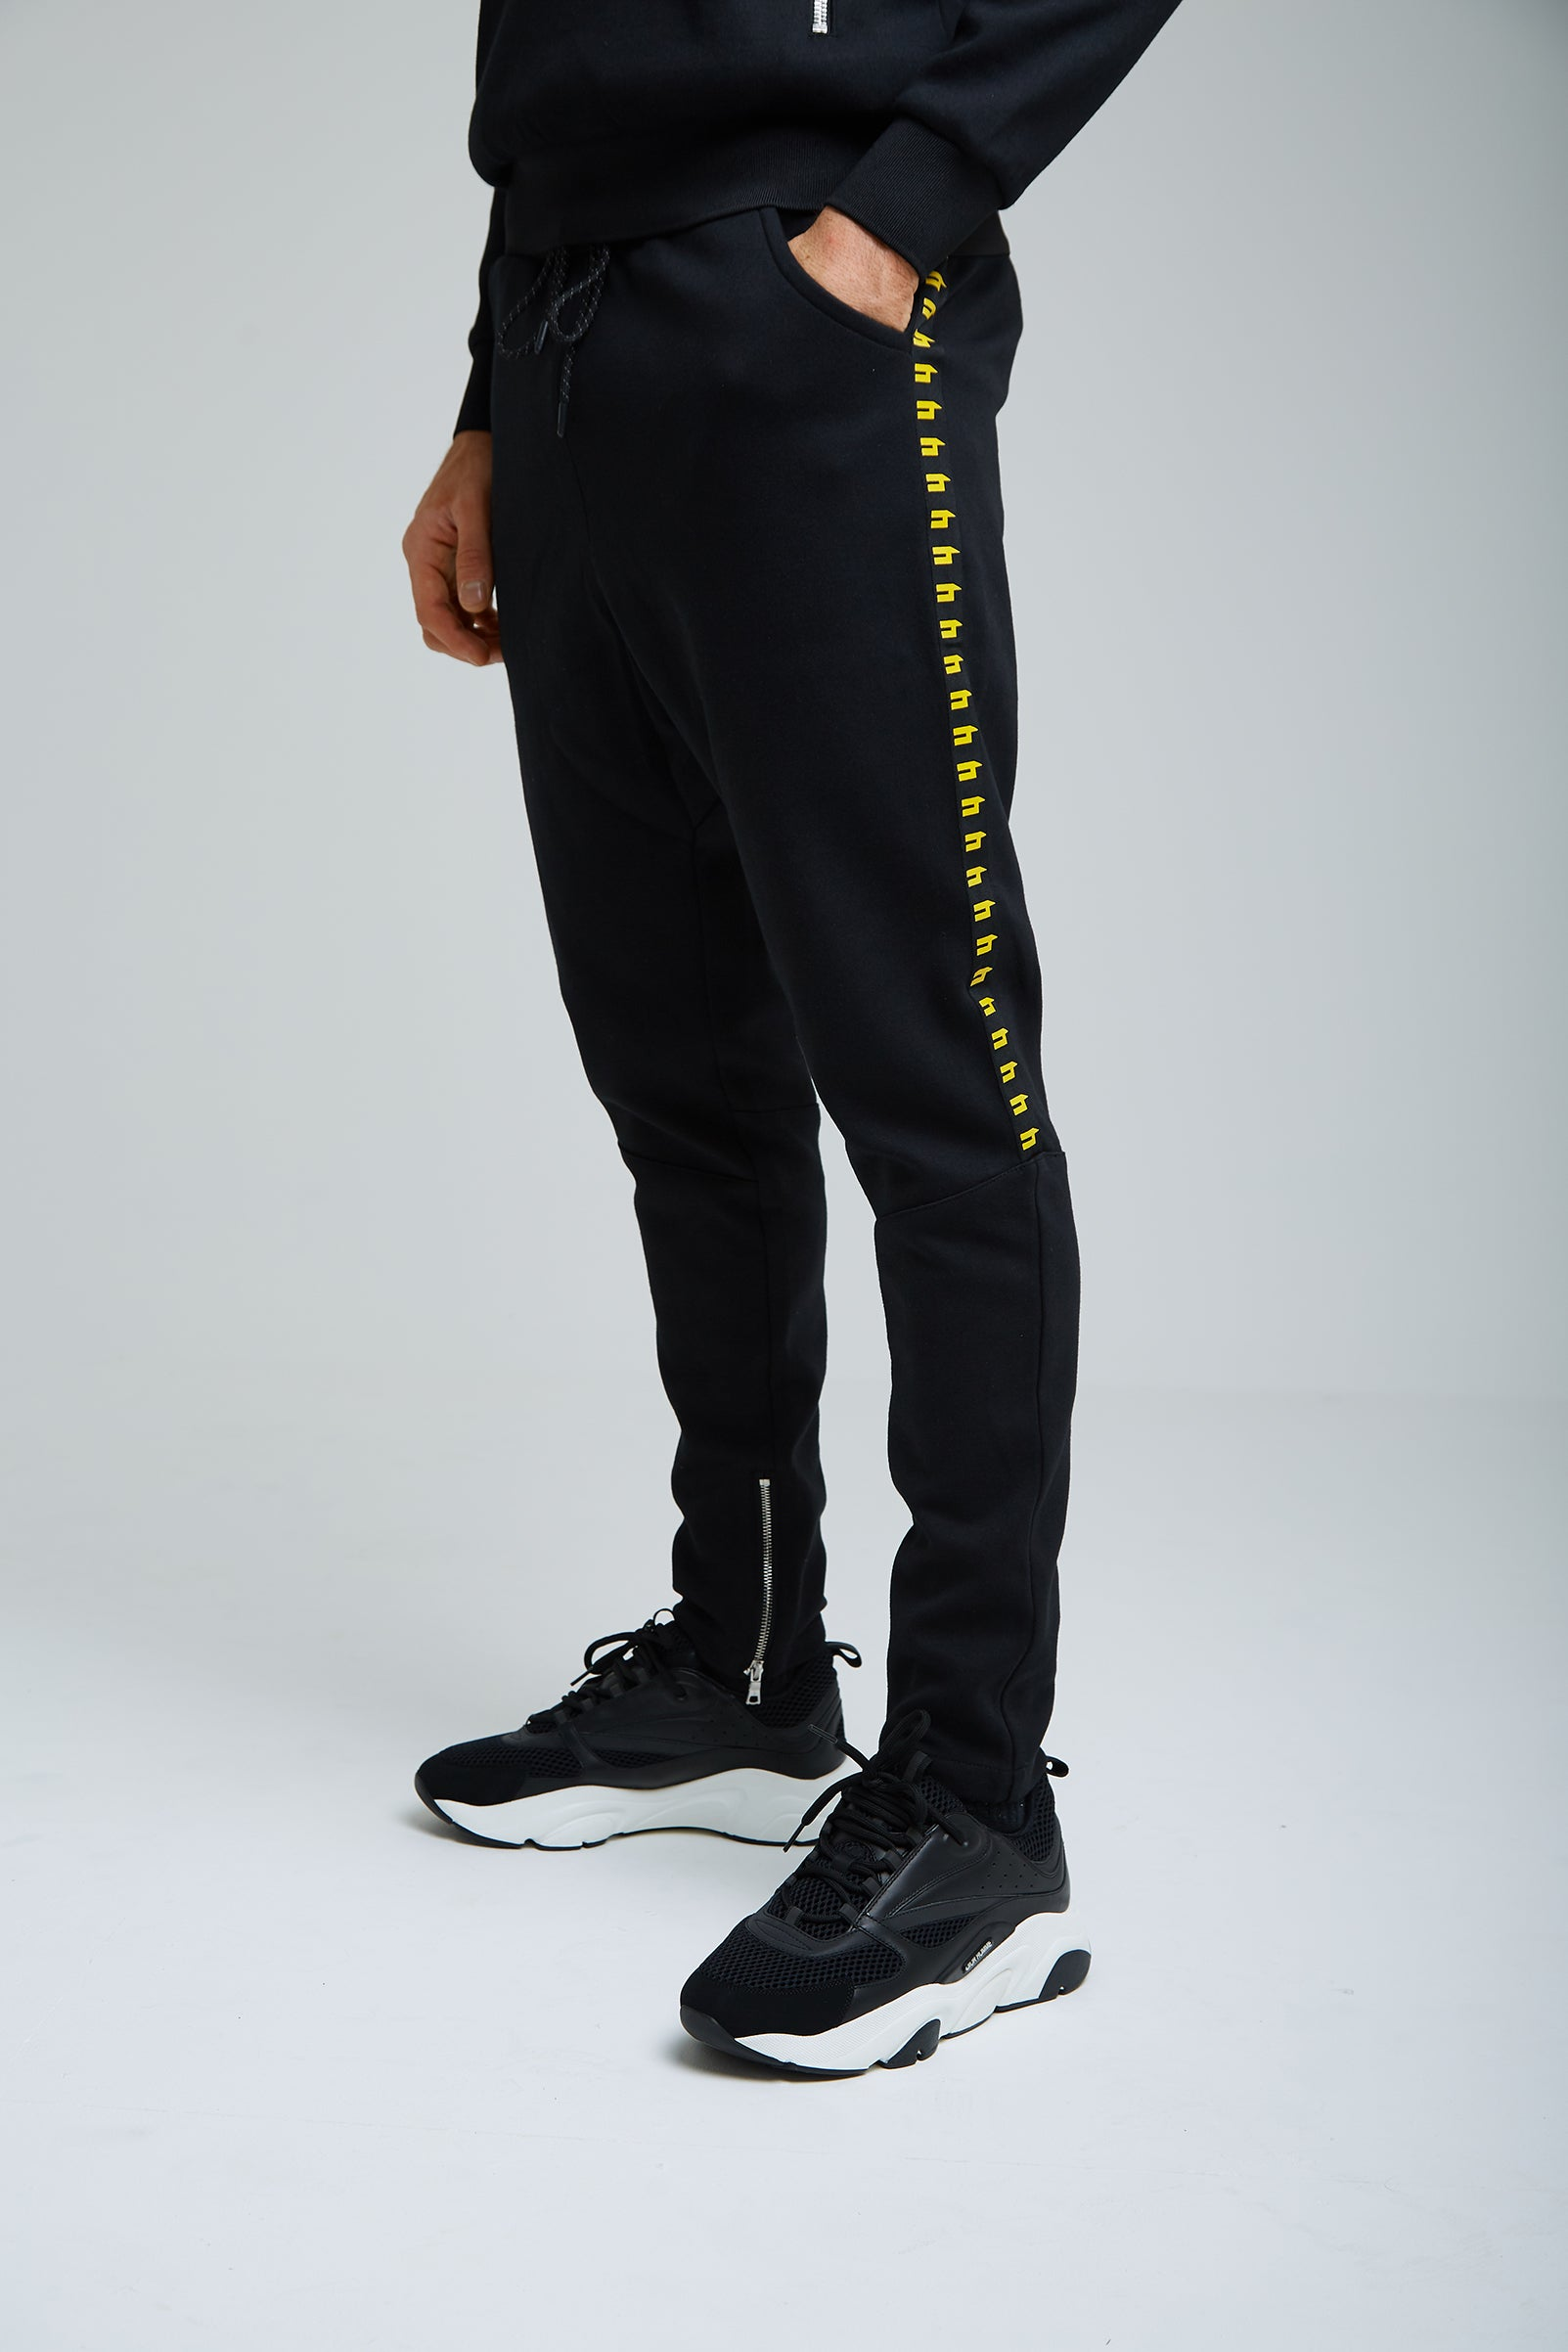 YELIR WORLD SIDE STRIPE JOGGER BLACK/YELLOW